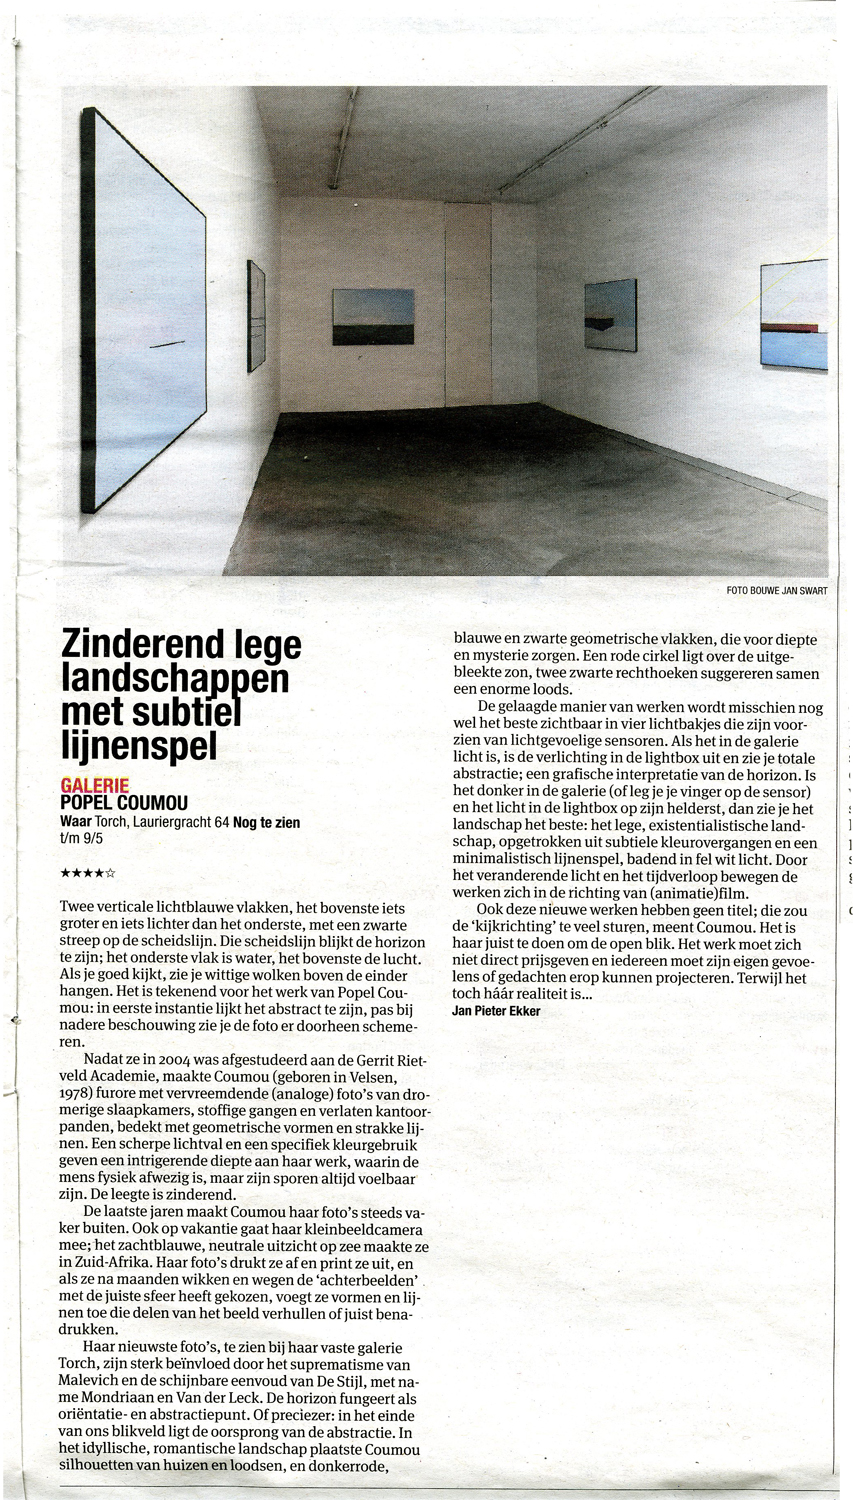 Het Parool May 1st 2015 By Jan Pieter Ekker 4 start rating about my show in TORCH Gallery